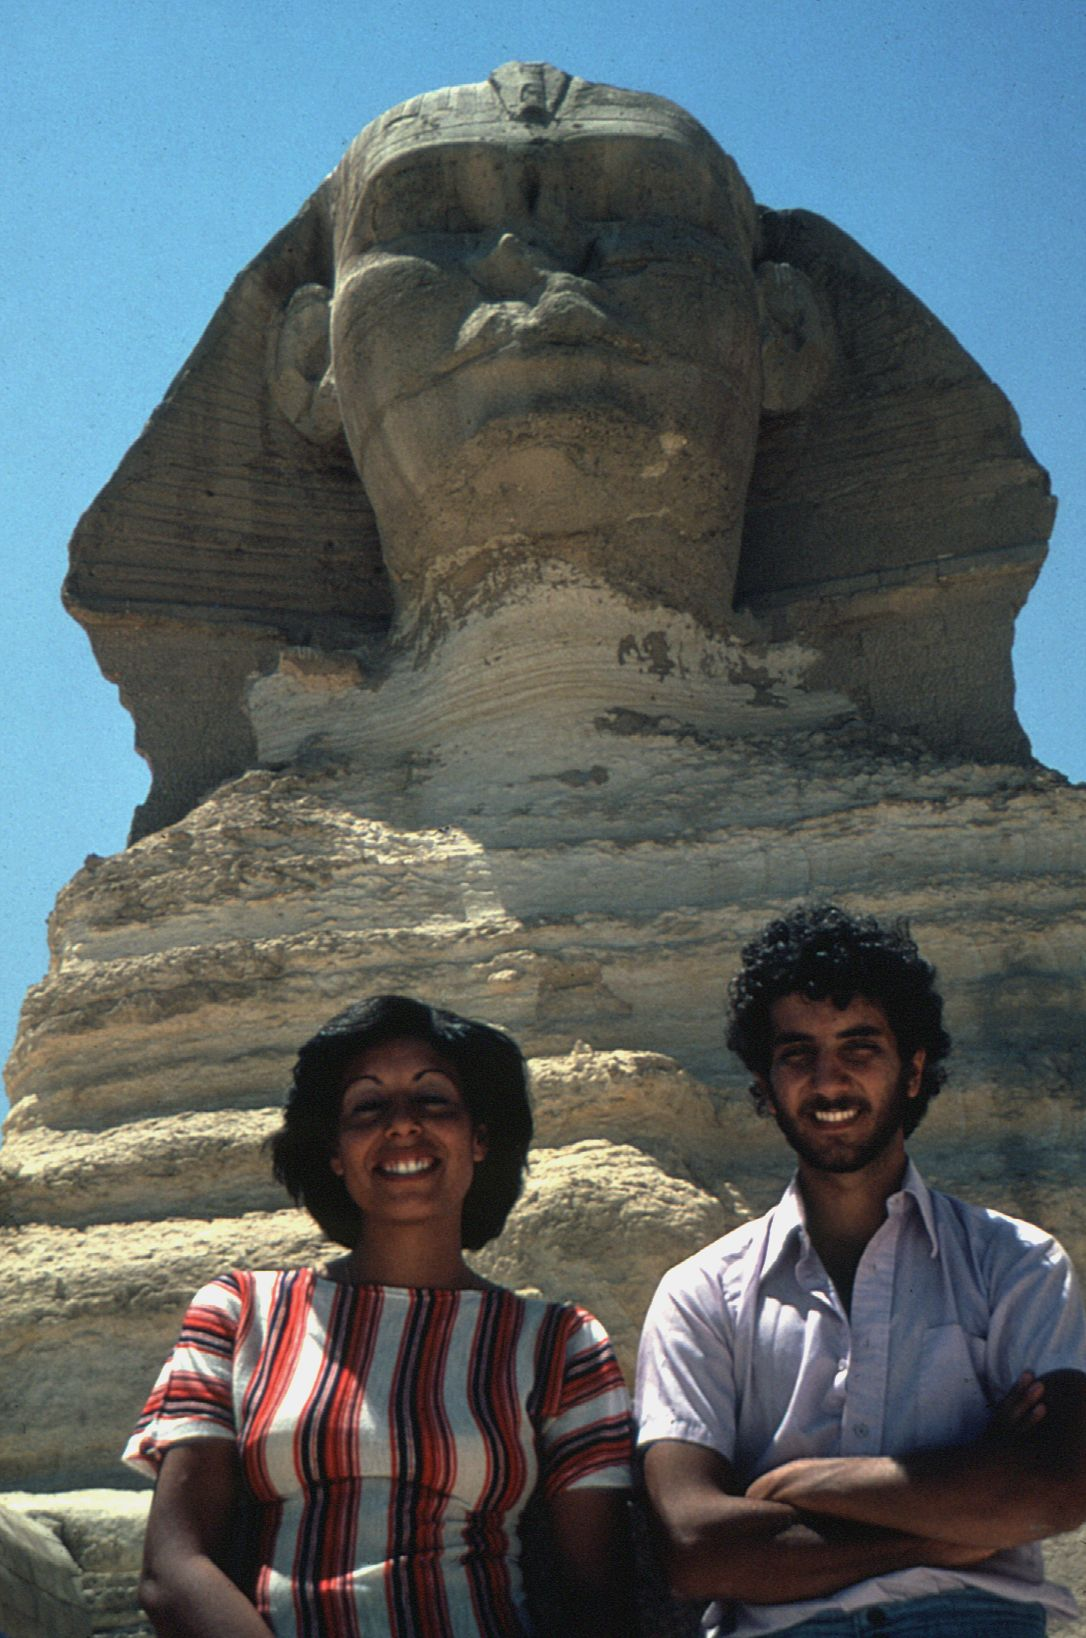 People & places: Site: Giza; View: Sphinx